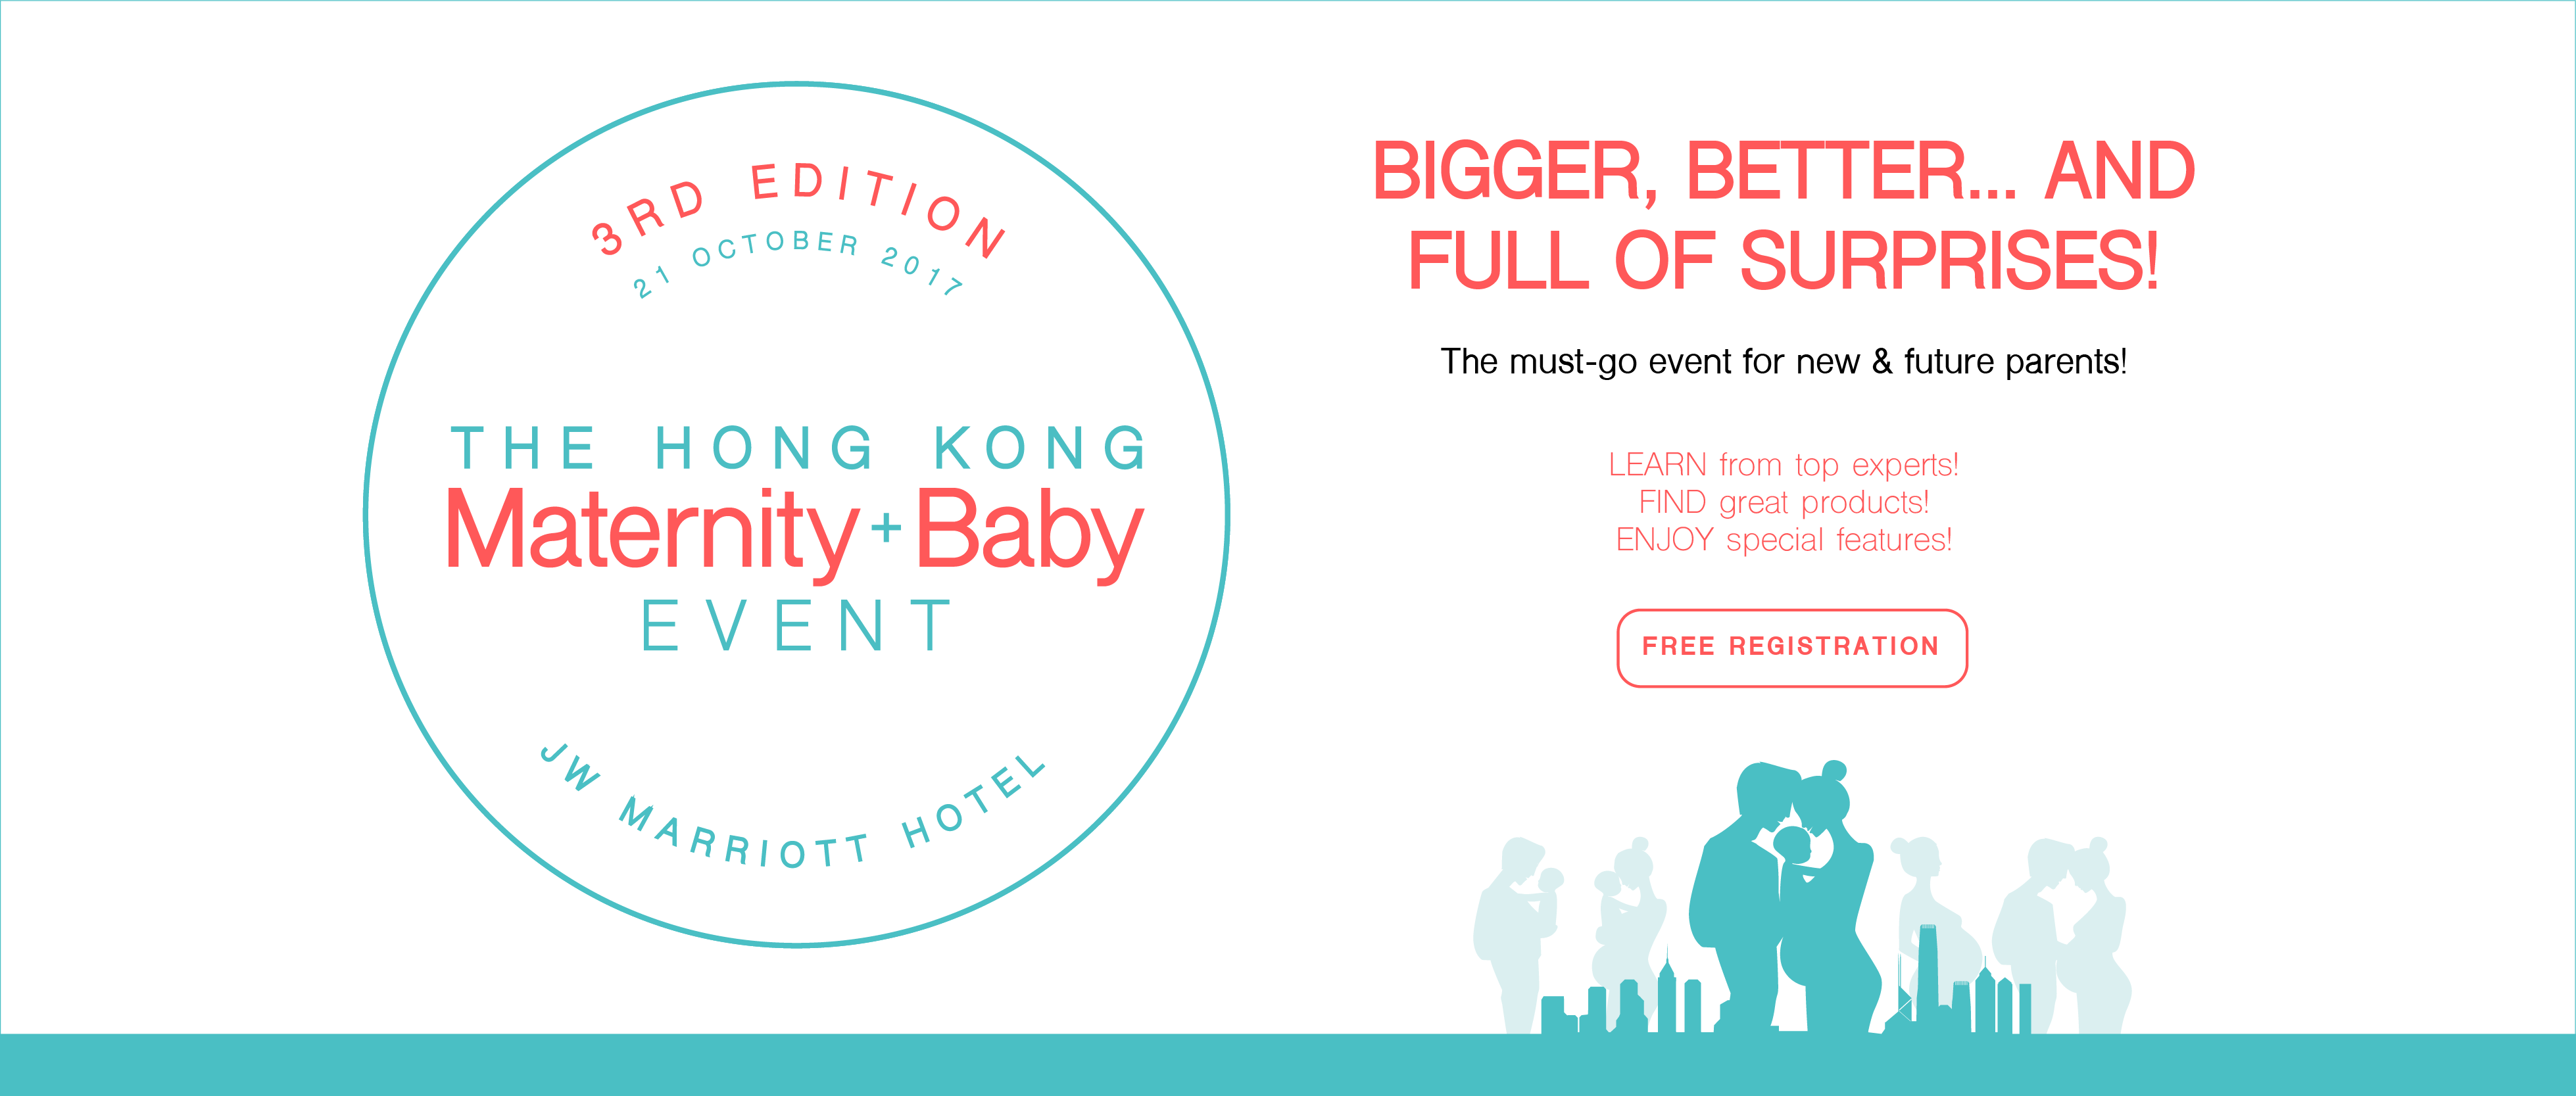 Hong Kong's 3rd Maternity + Baby Event